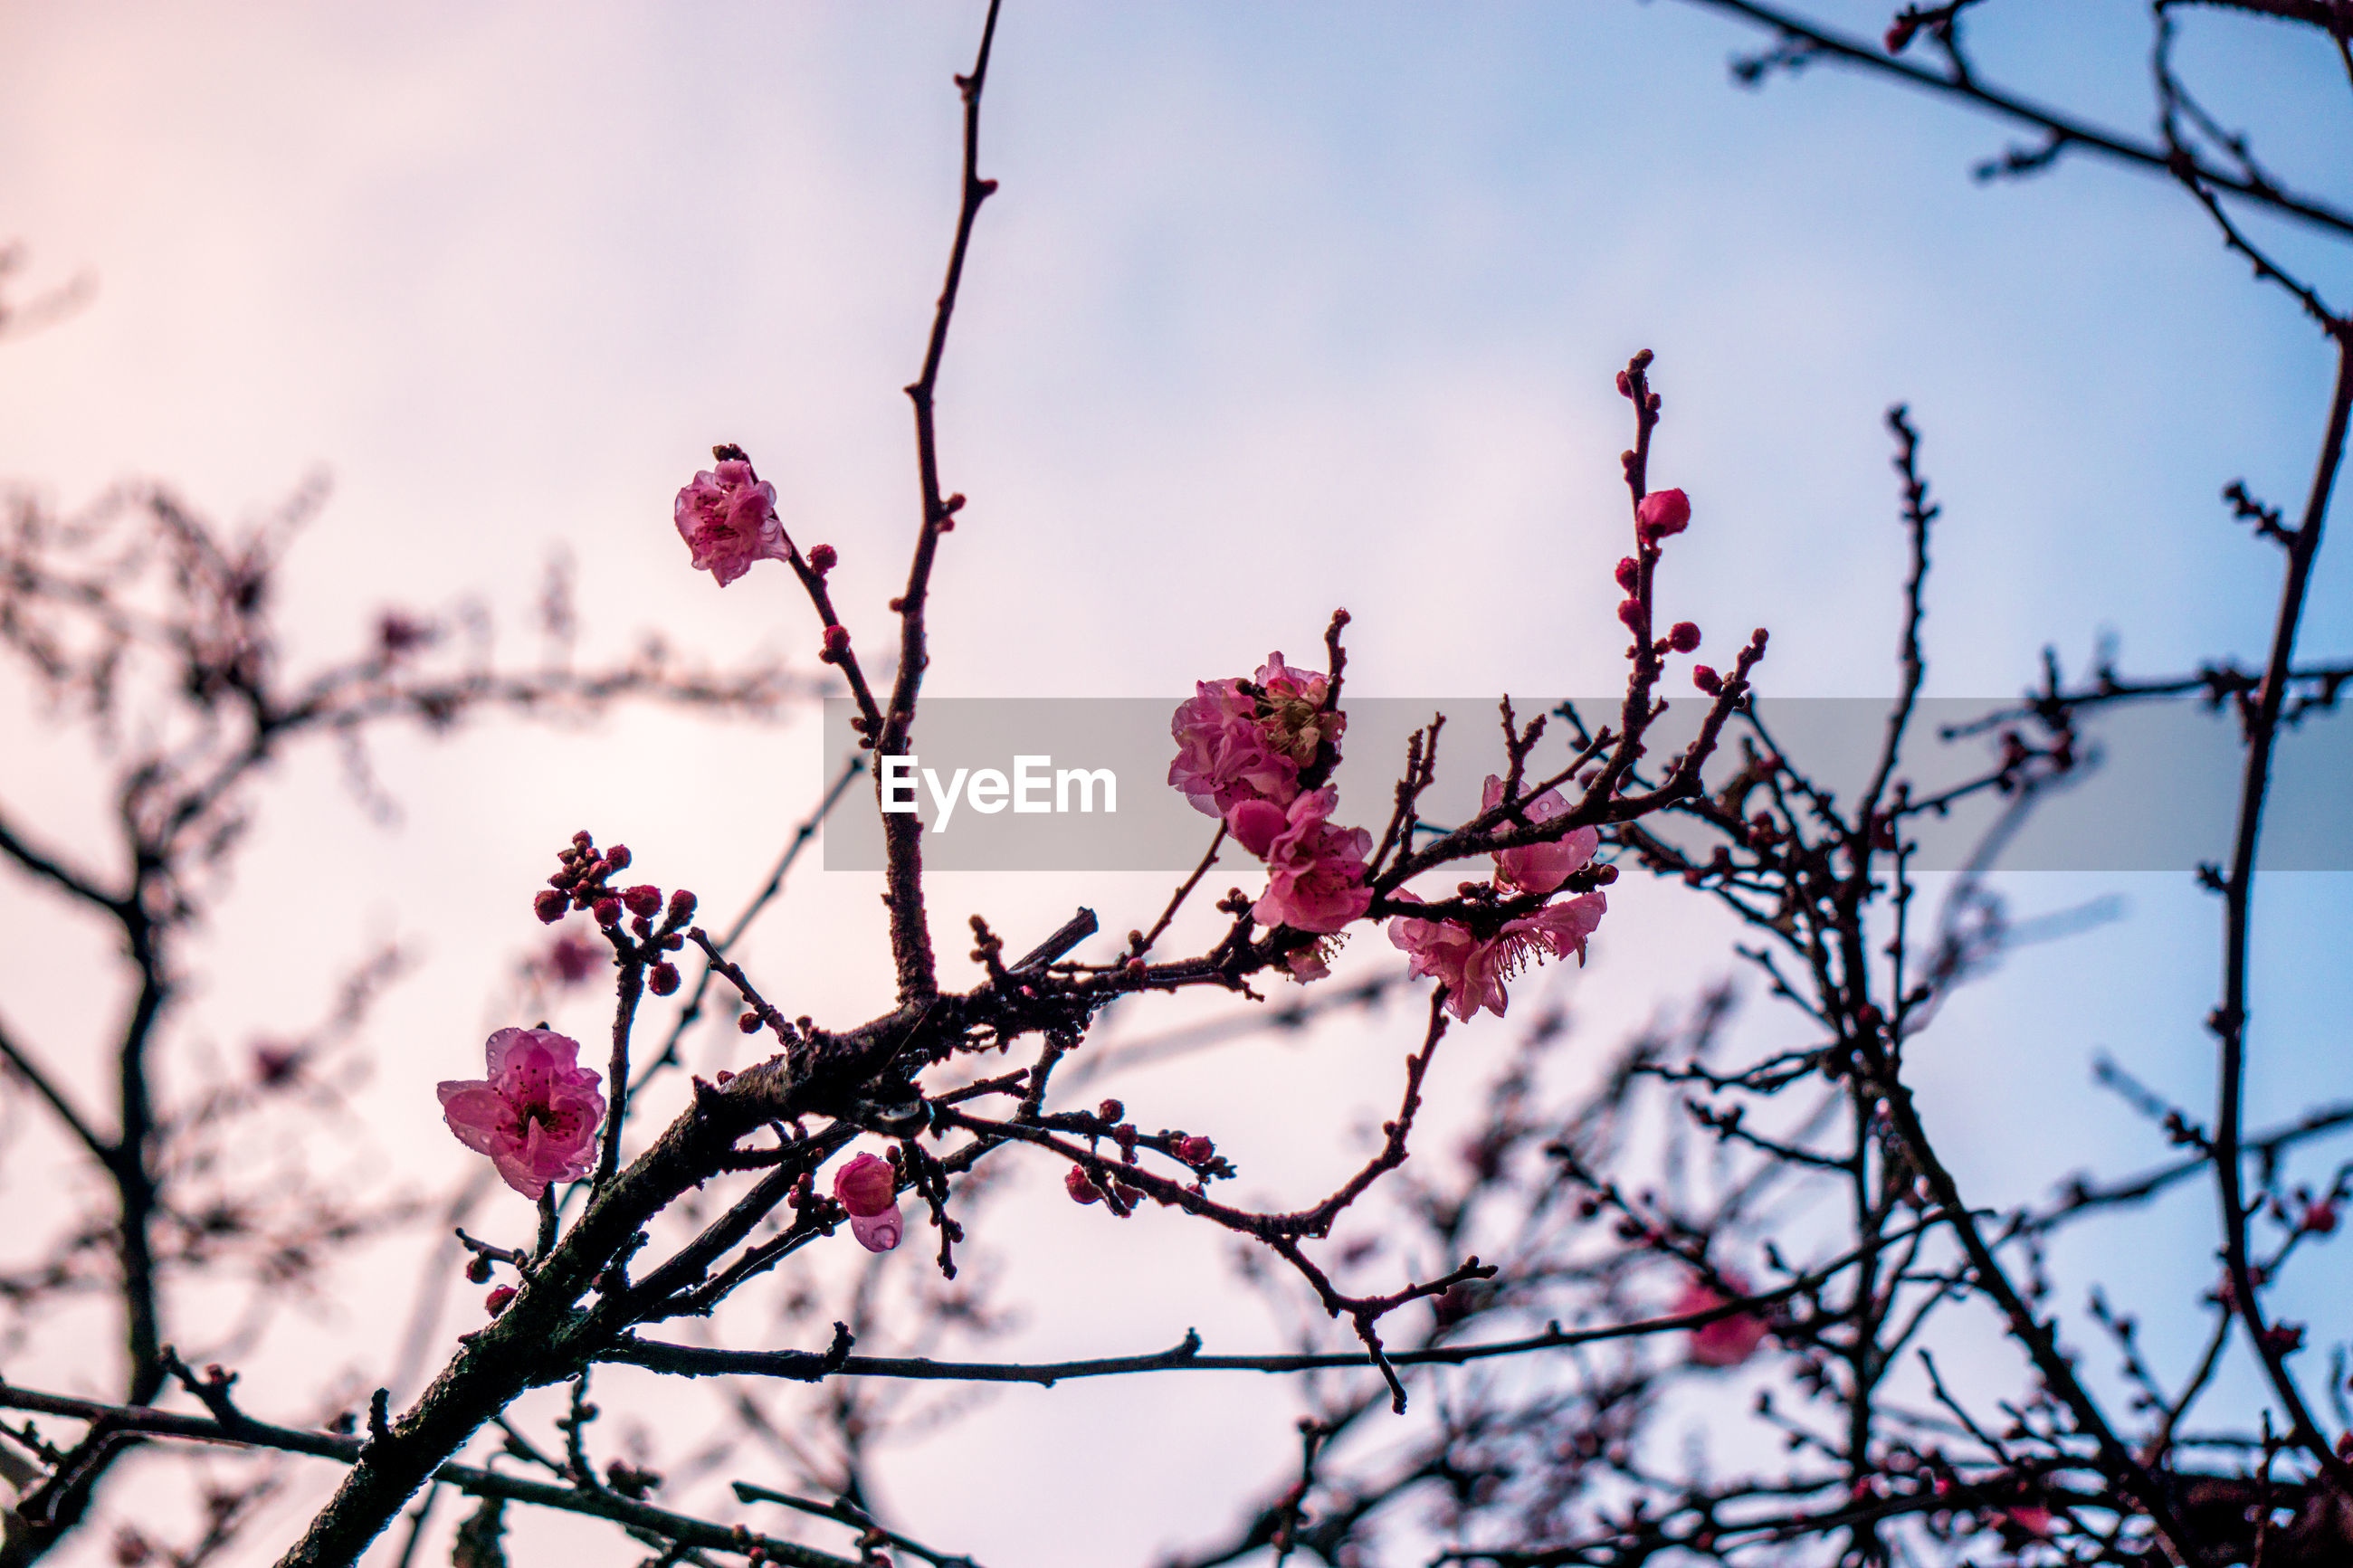 LOW ANGLE VIEW OF PINK FLOWERS ON TREE BRANCH